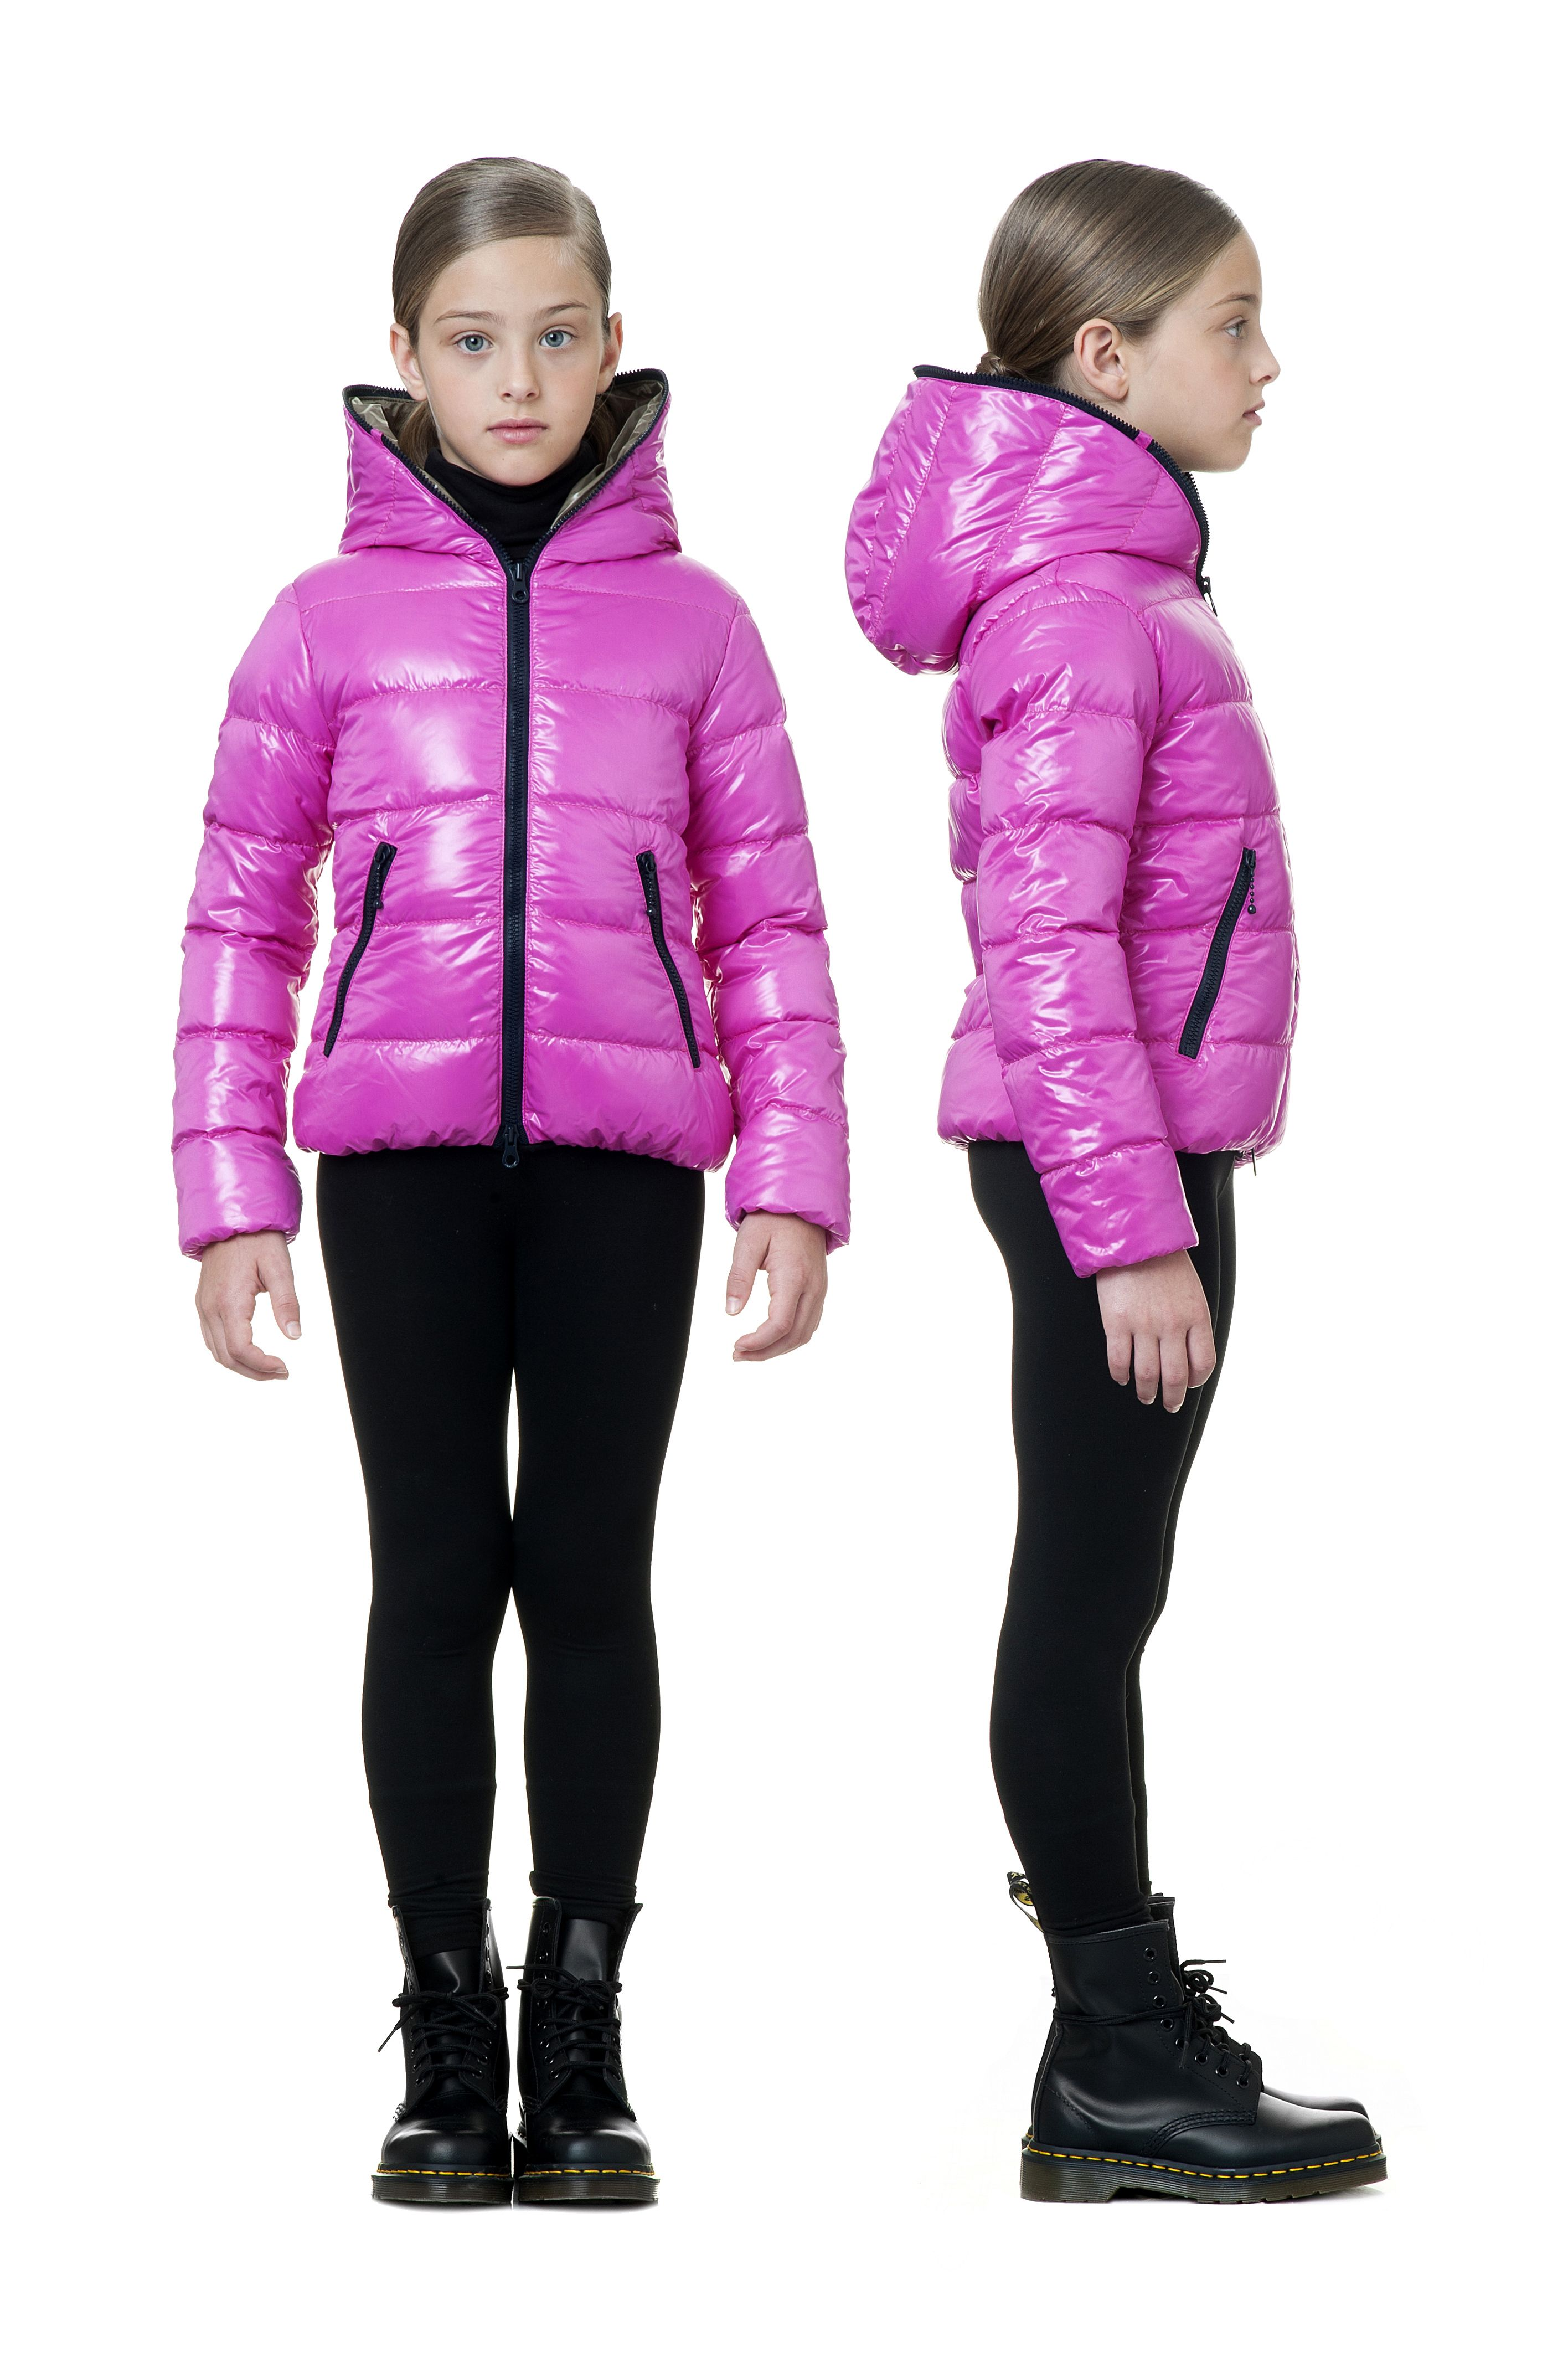 low priced 491ad ebd36 duvetica #fashionkids #kids #downjacket #fall #winter #style ...